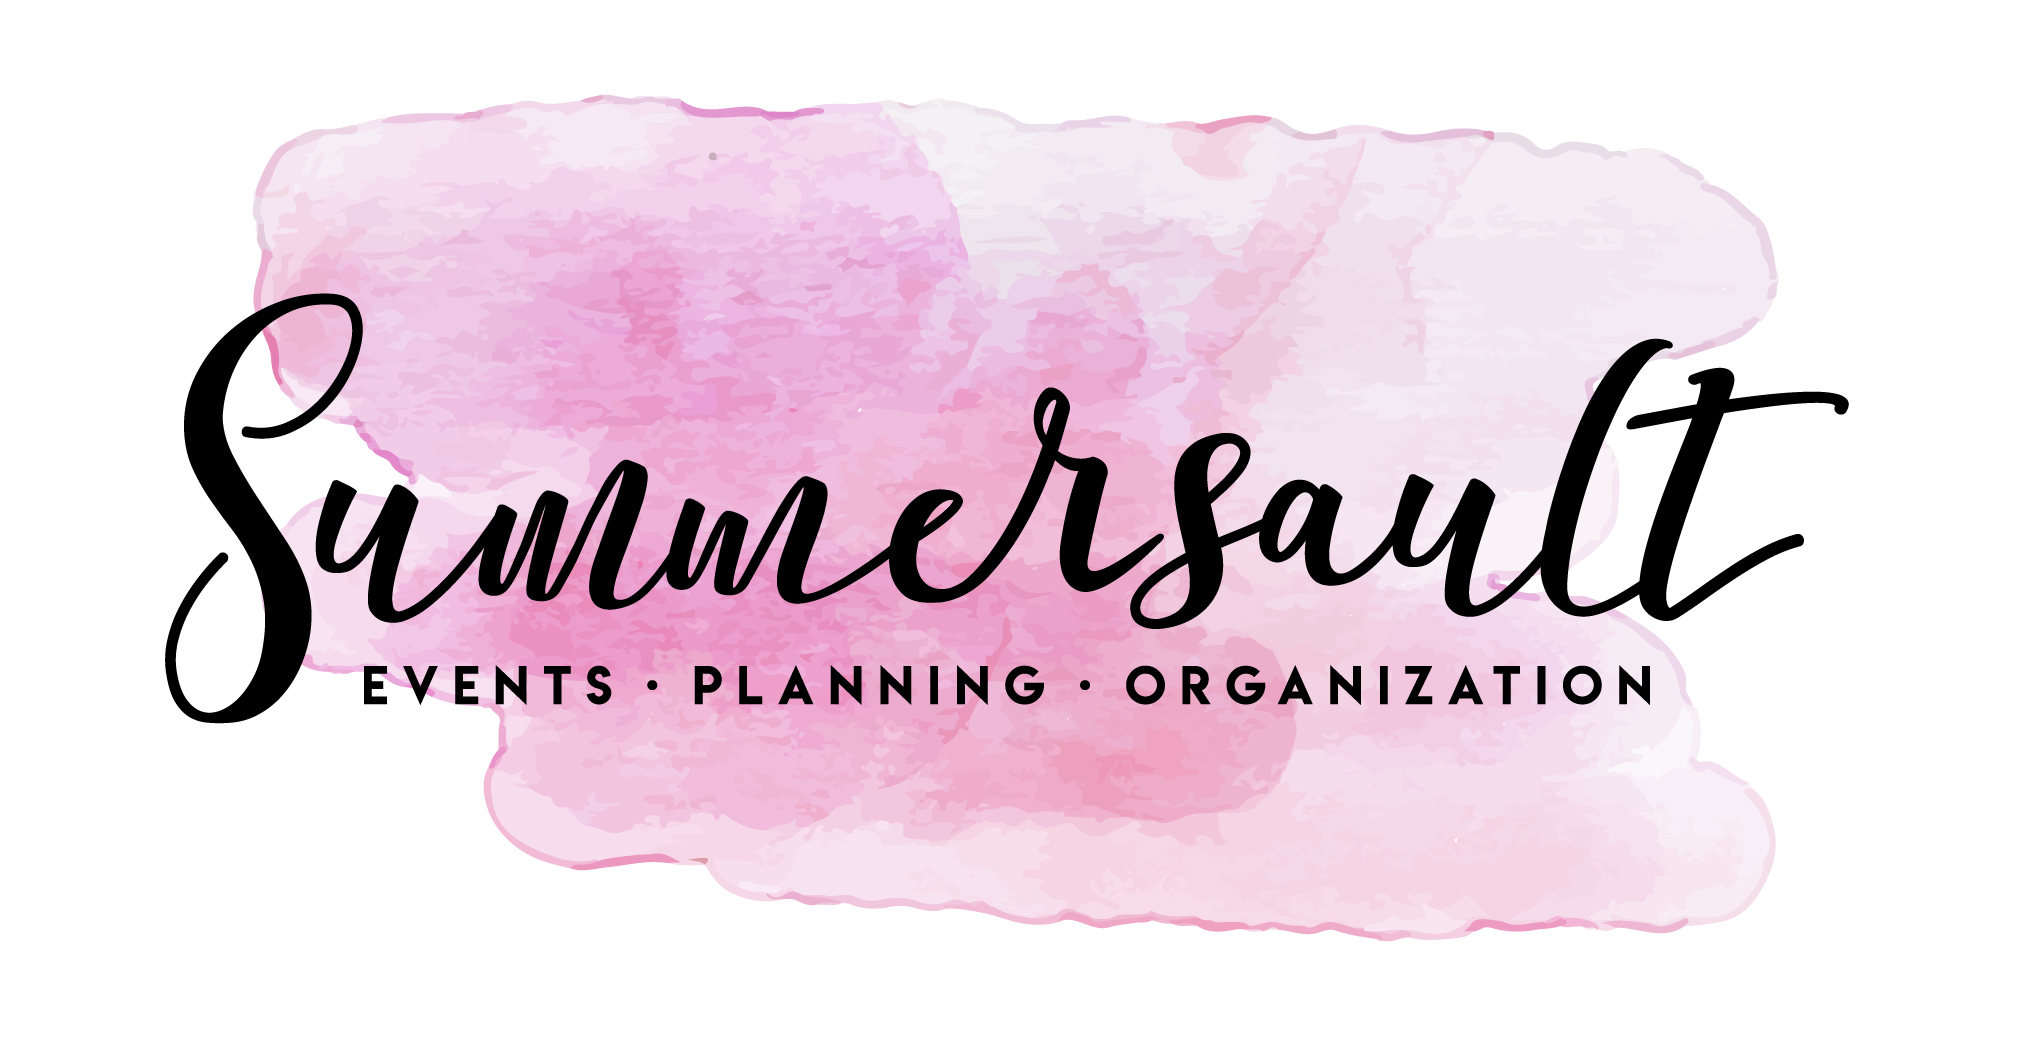 Summersault Events & Planning